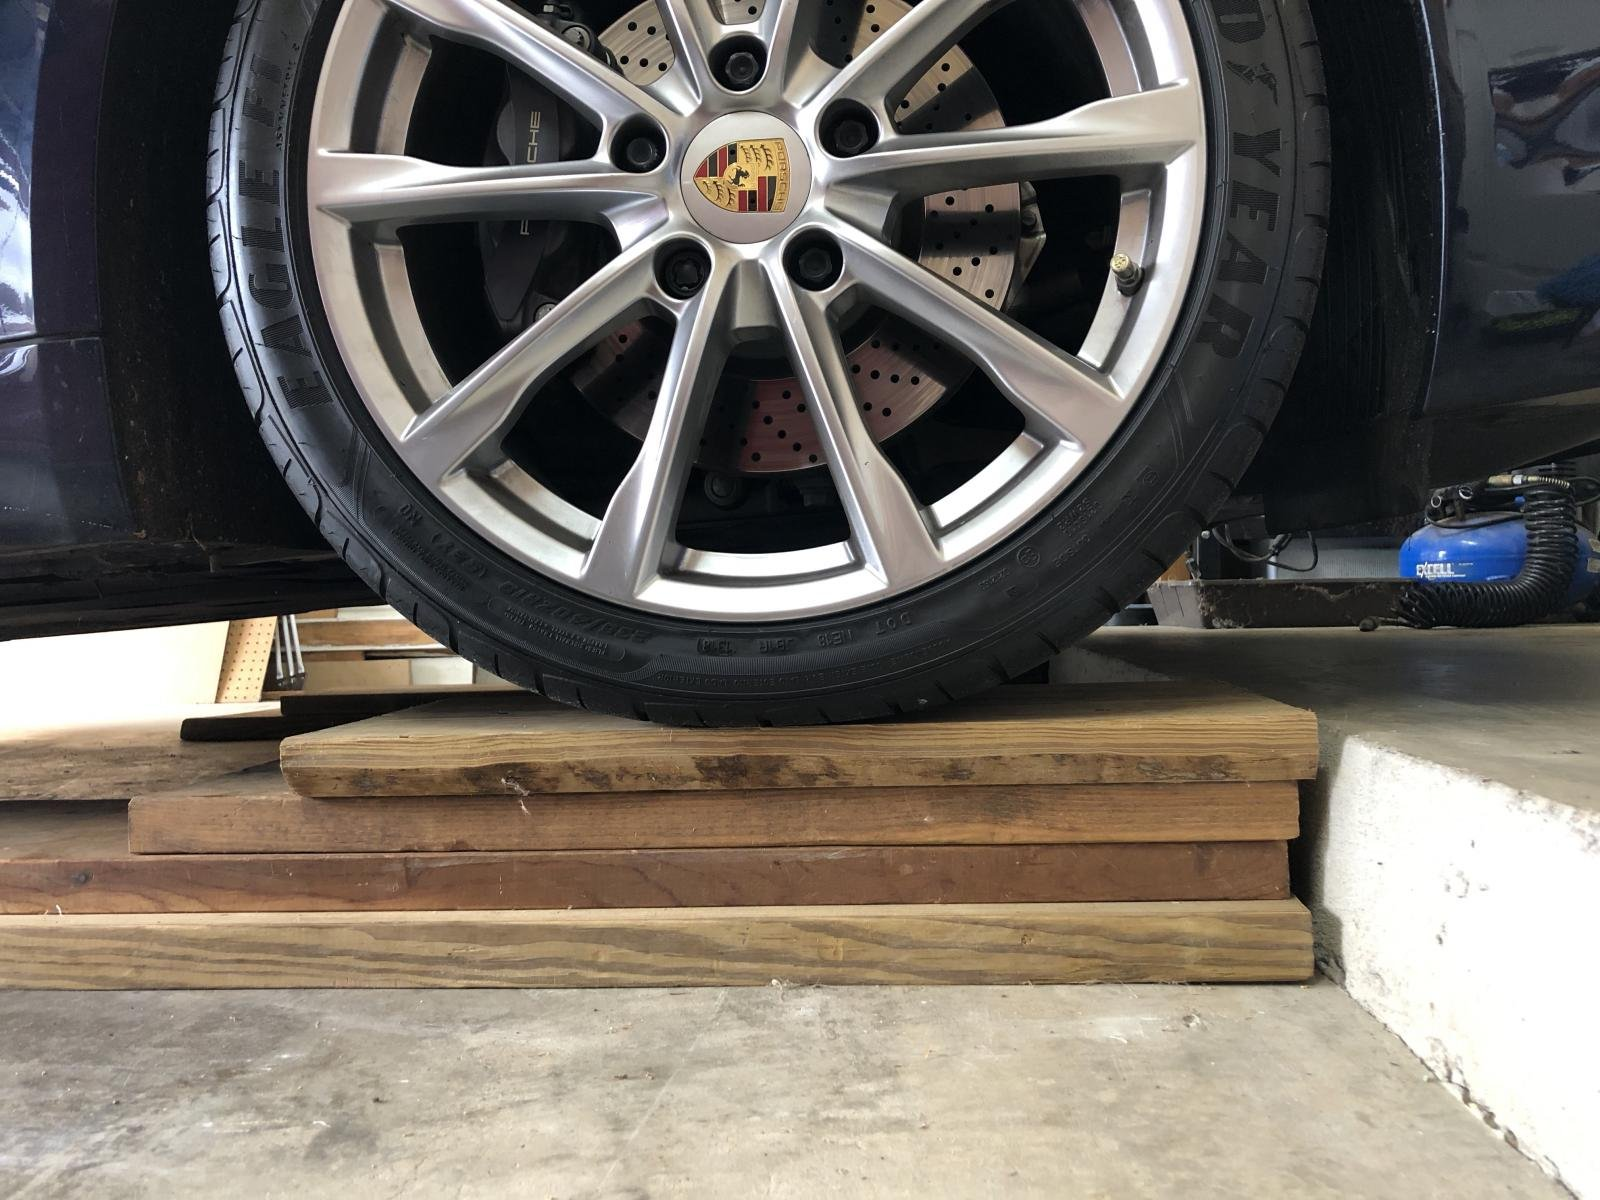 Dan's version of oil change with pictures-q3x4%25ovxtrgxtzhtg8oesw.jpg